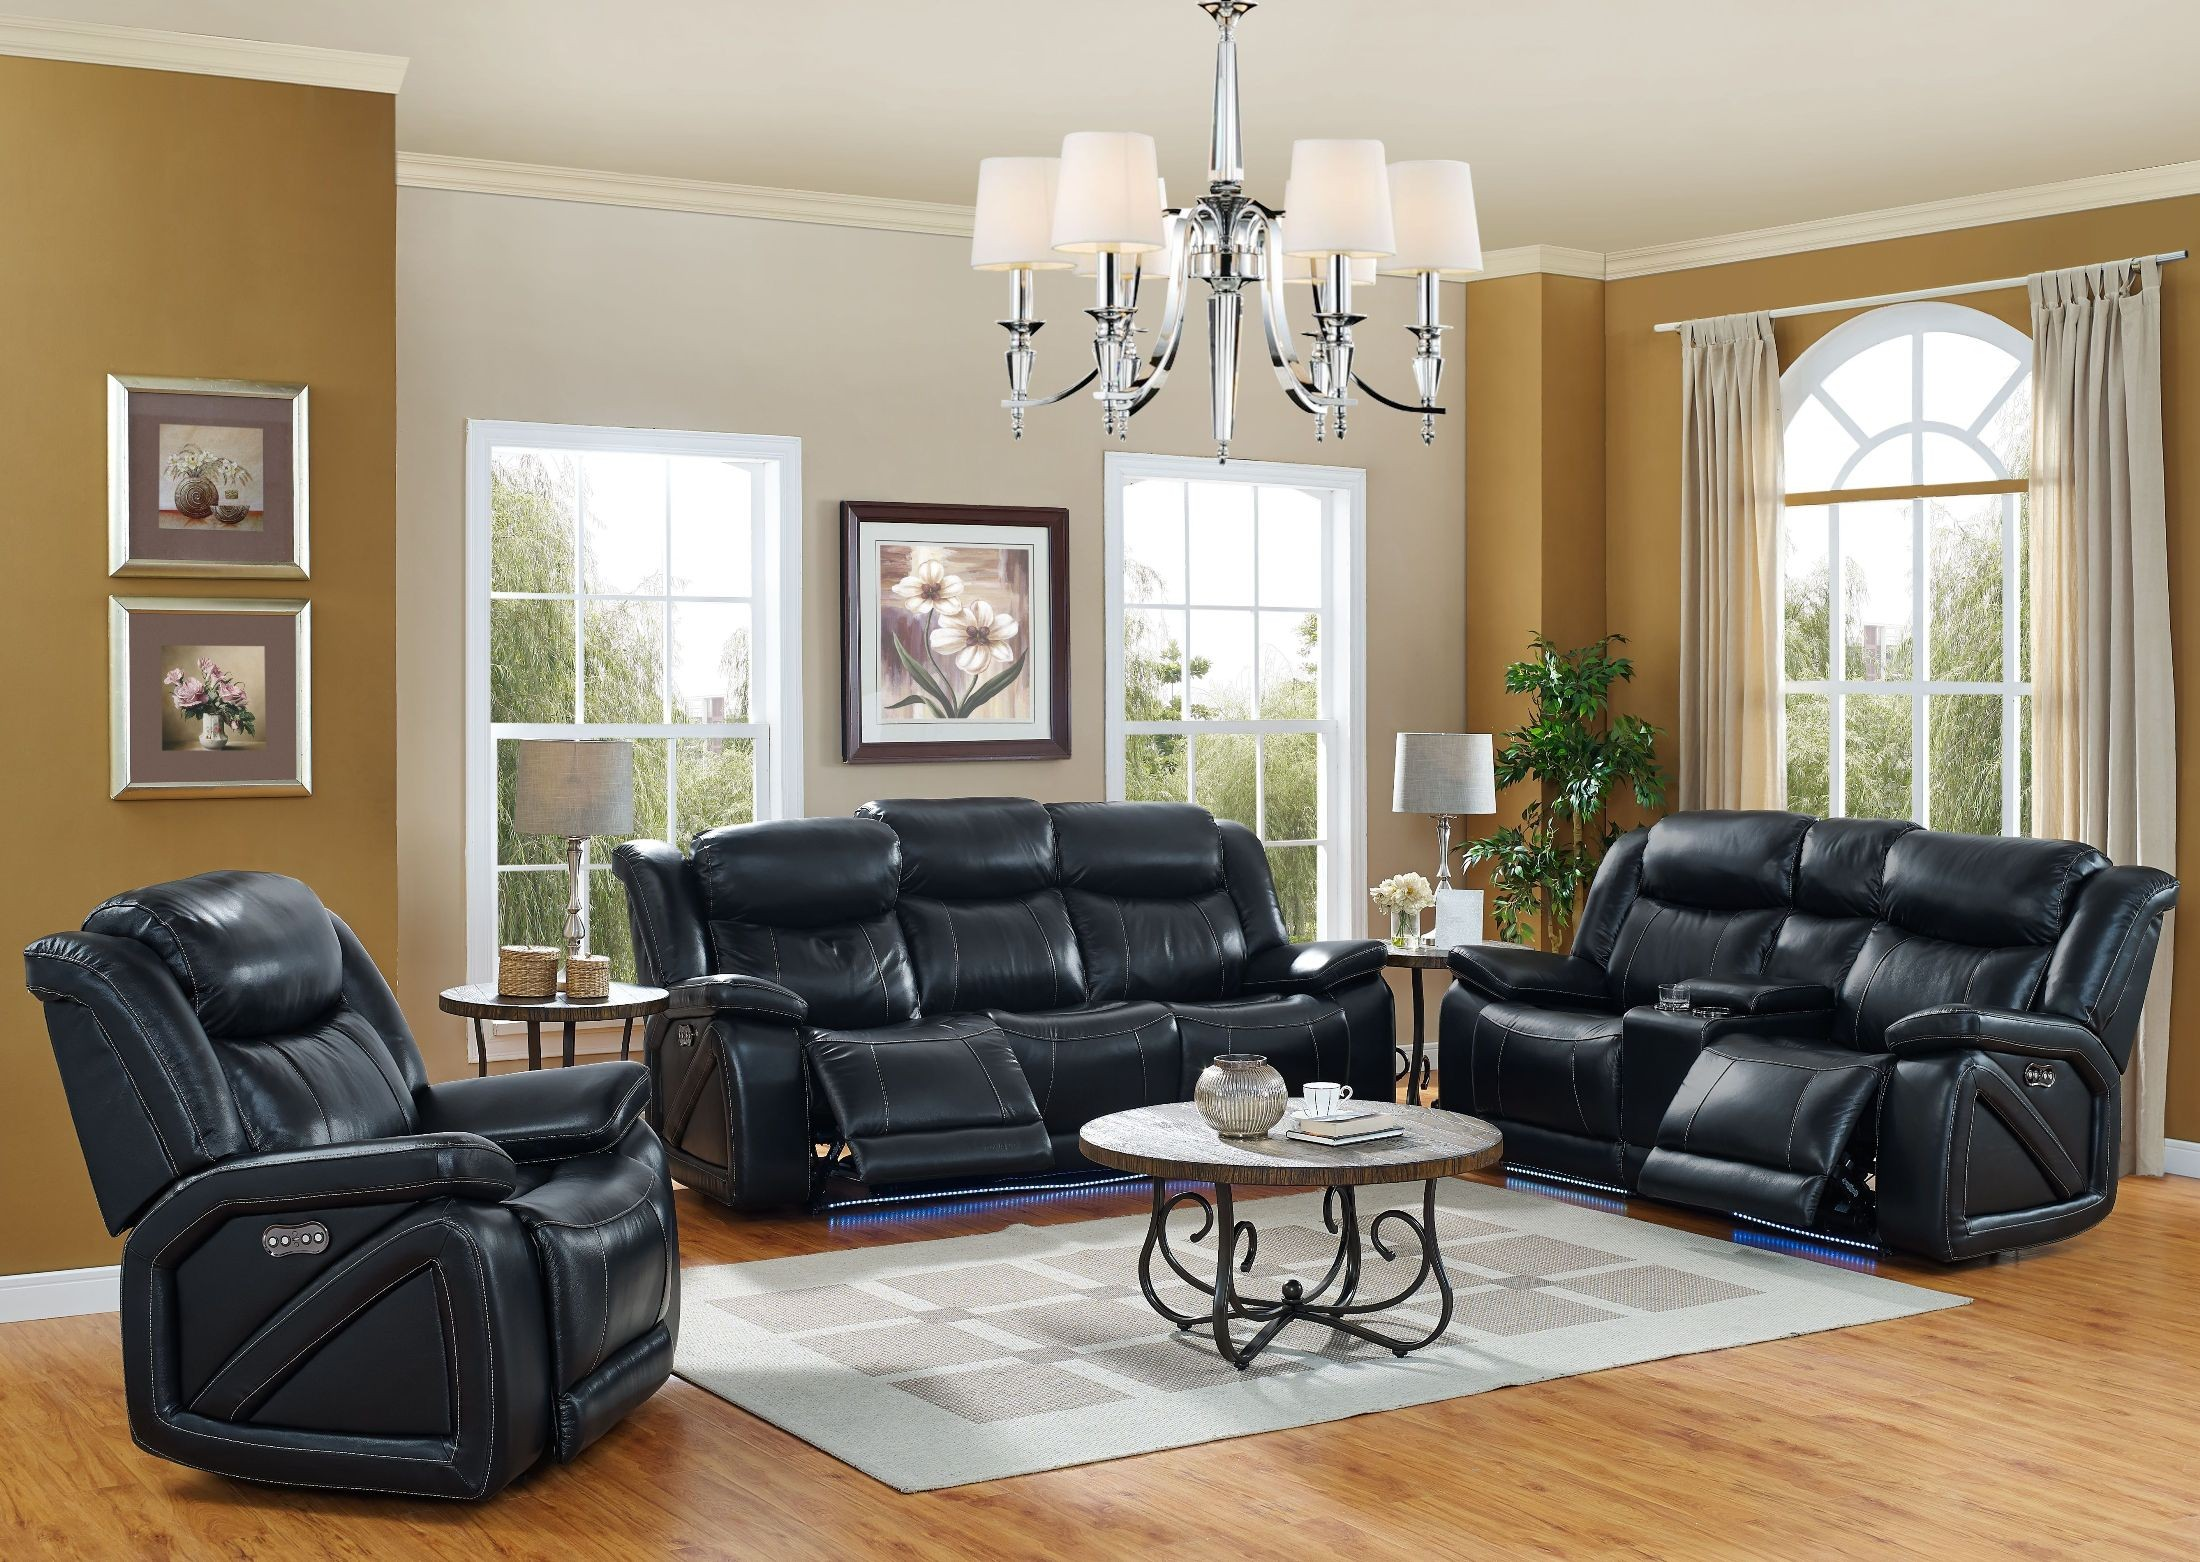 Las Vegas Black Power Reclining Living Room Set From New Classic Coleman Furniture